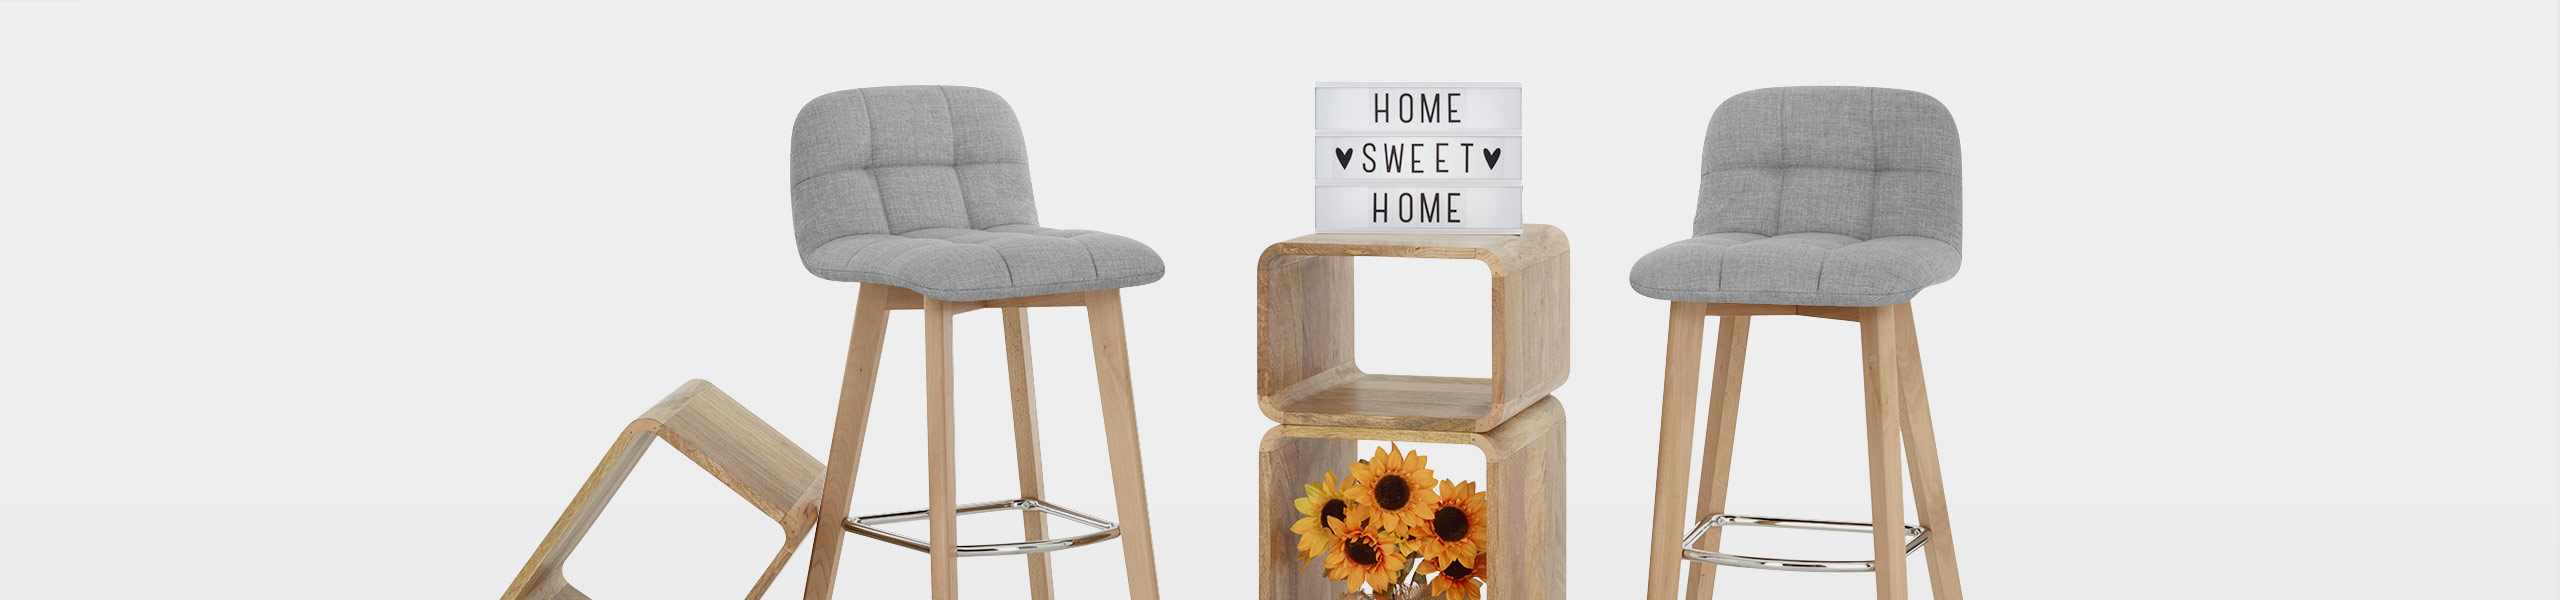 Hex Wooden Stool Grey Fabric Video Banner